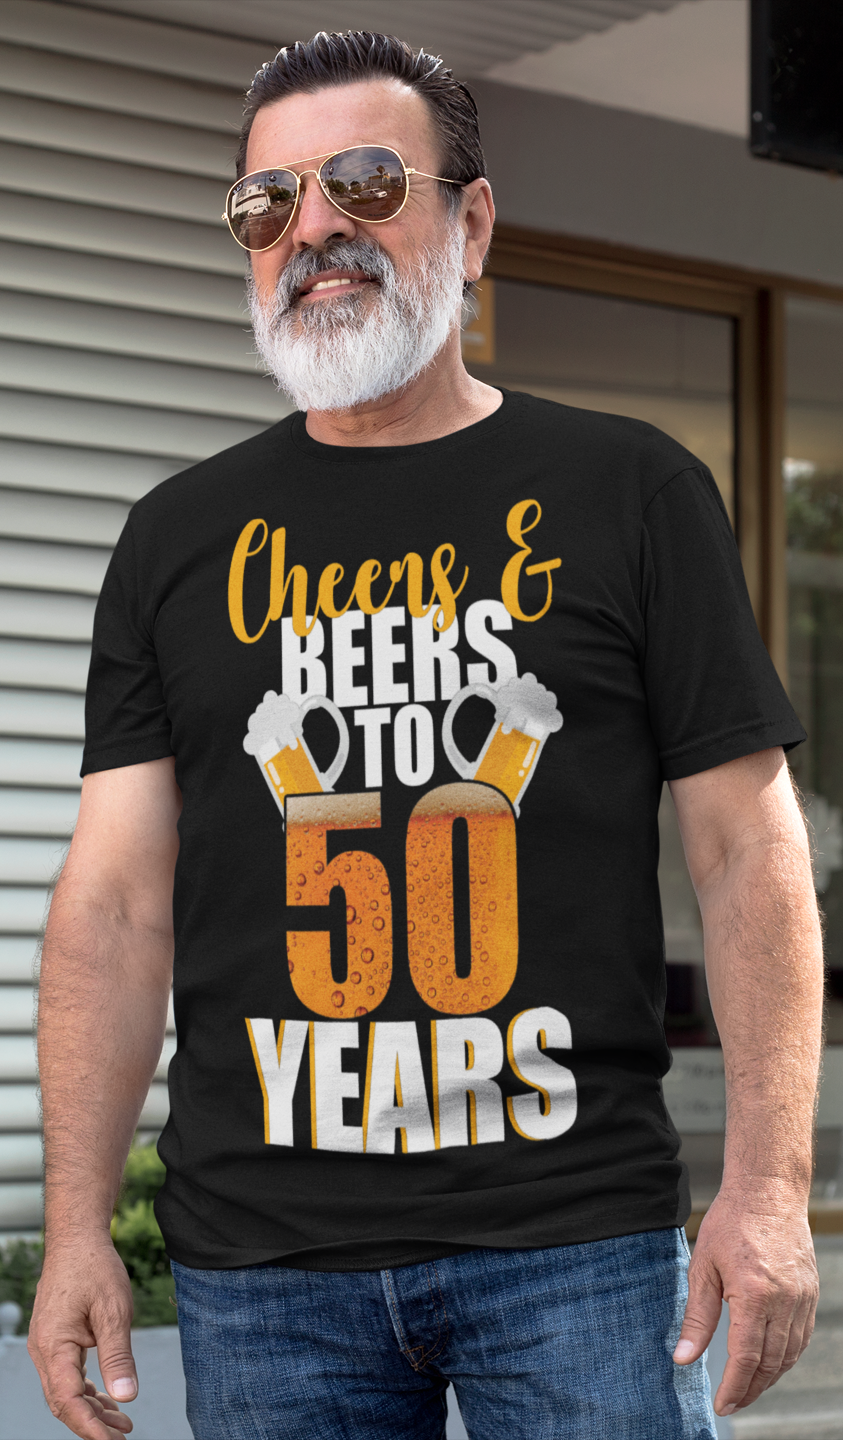 a92aa096a95bc 50th Birthday Cheers & Beers To 50 Years T-Shirt in 2019 | 50th ...